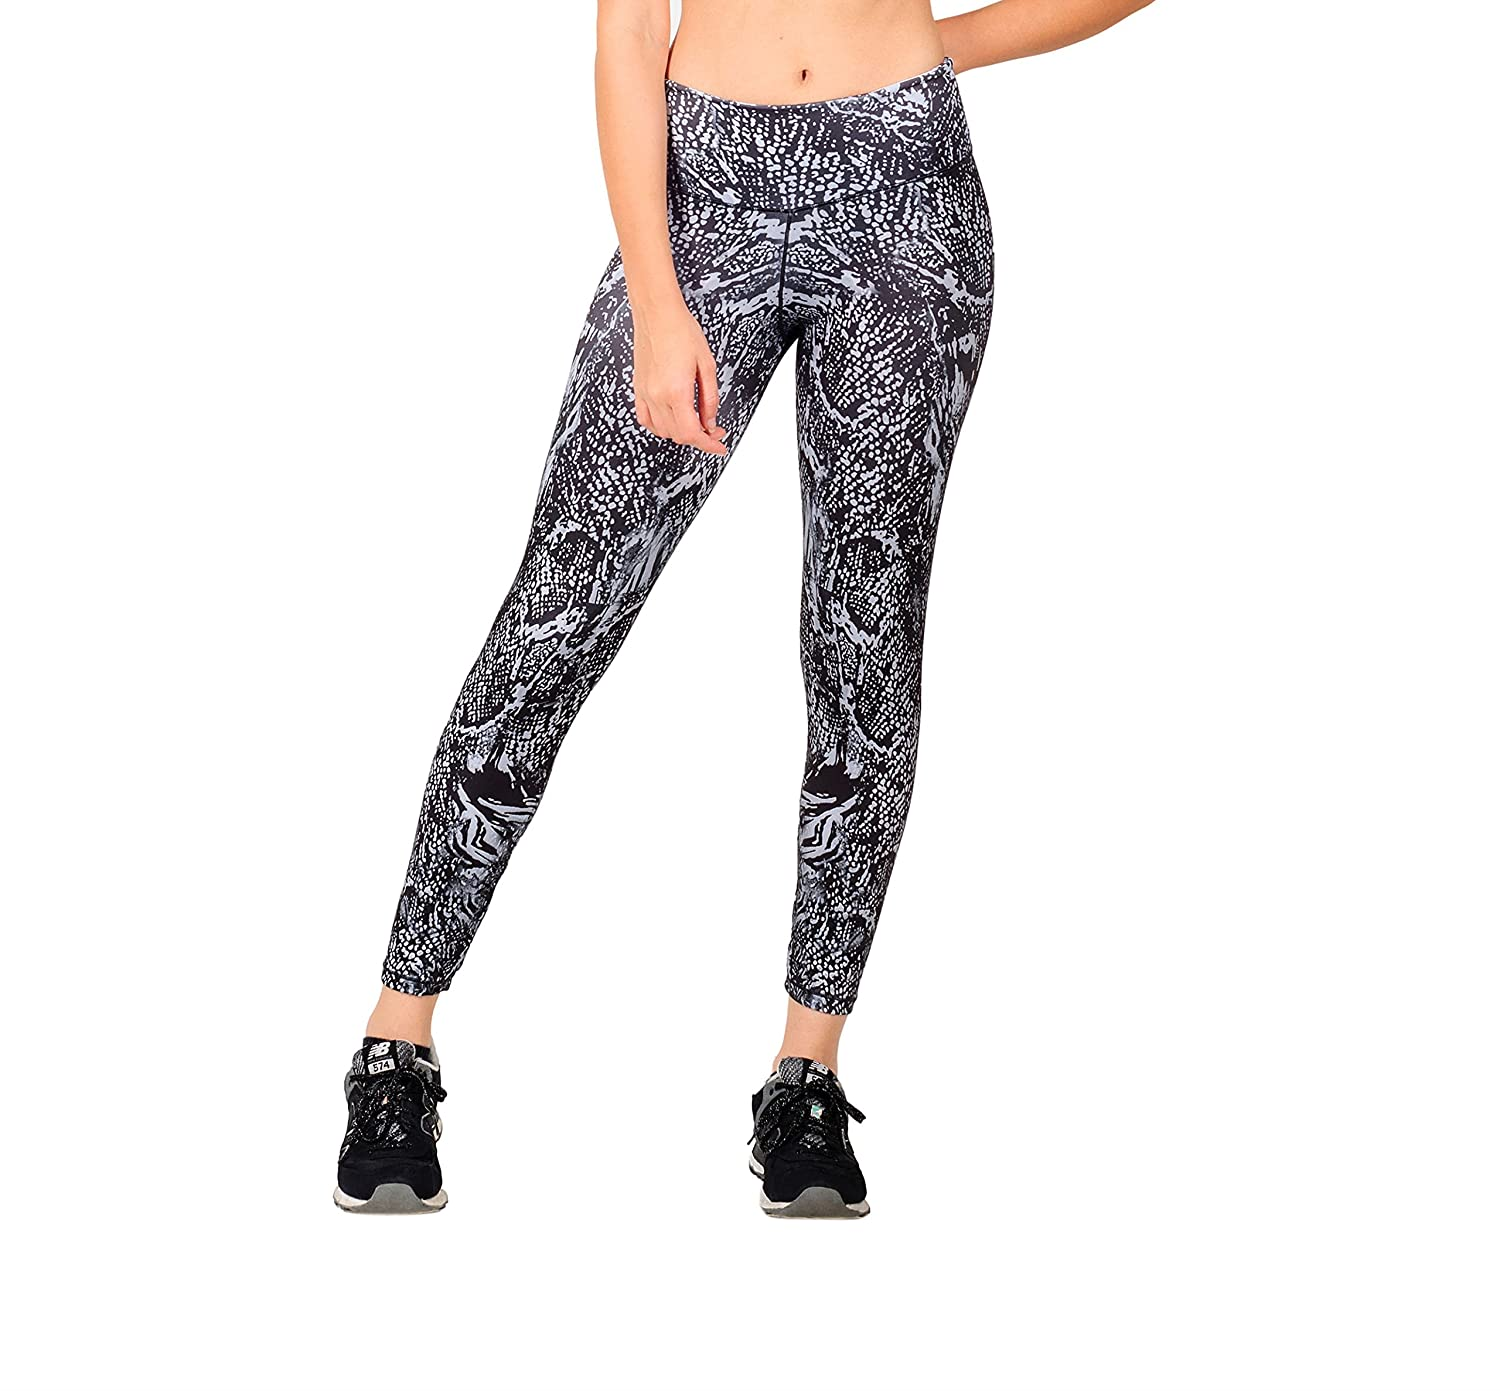 115637ec69761 PREMIUM HIGH QUALITY: ActiveFit yoga high waisted workout pants for women  are high quality athleisure and sportswear. These leggings are great to  conquer ...